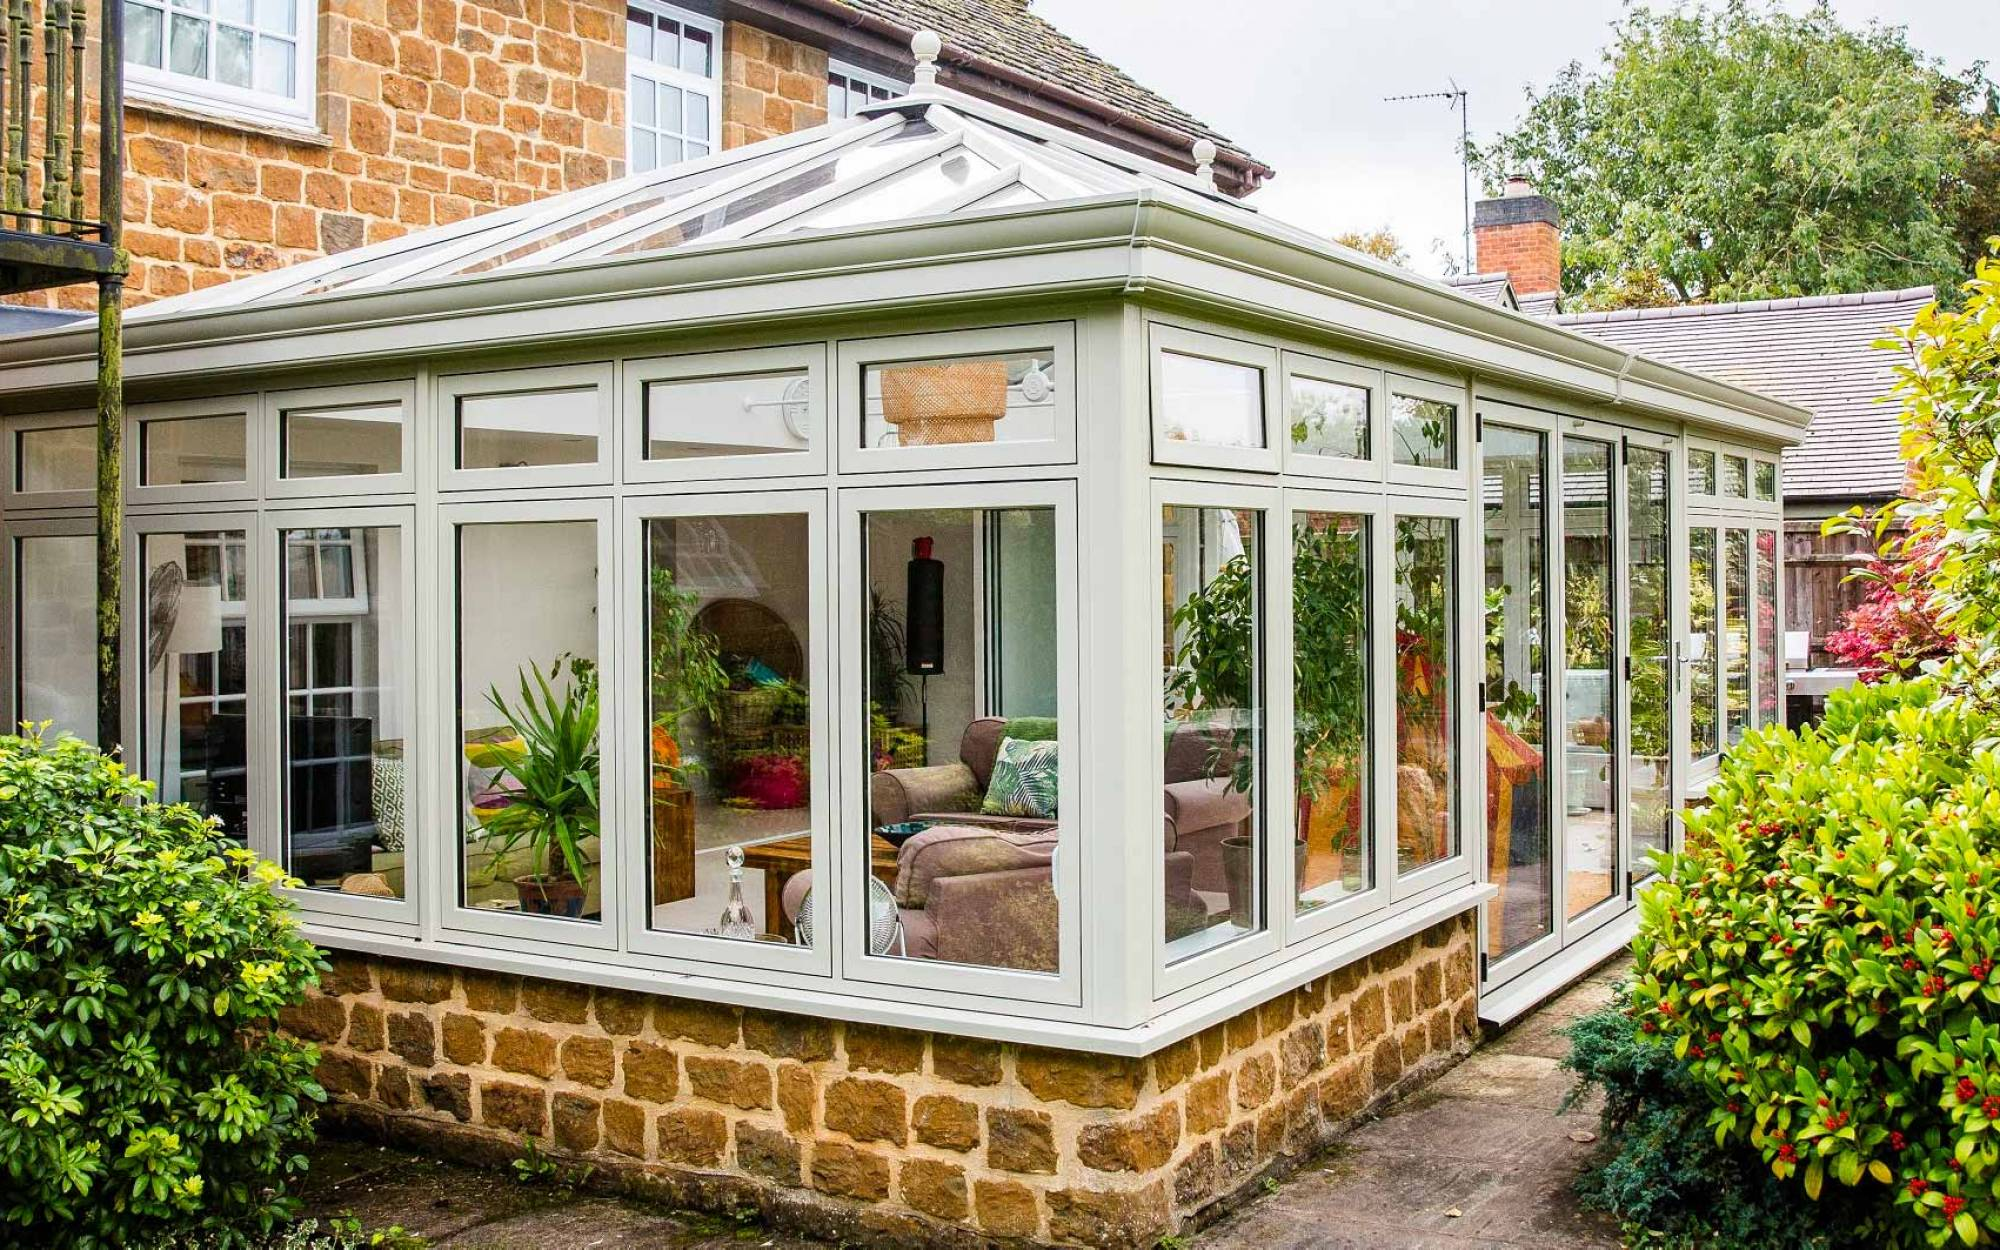 Lighting Ideas for your Home's Conservatory